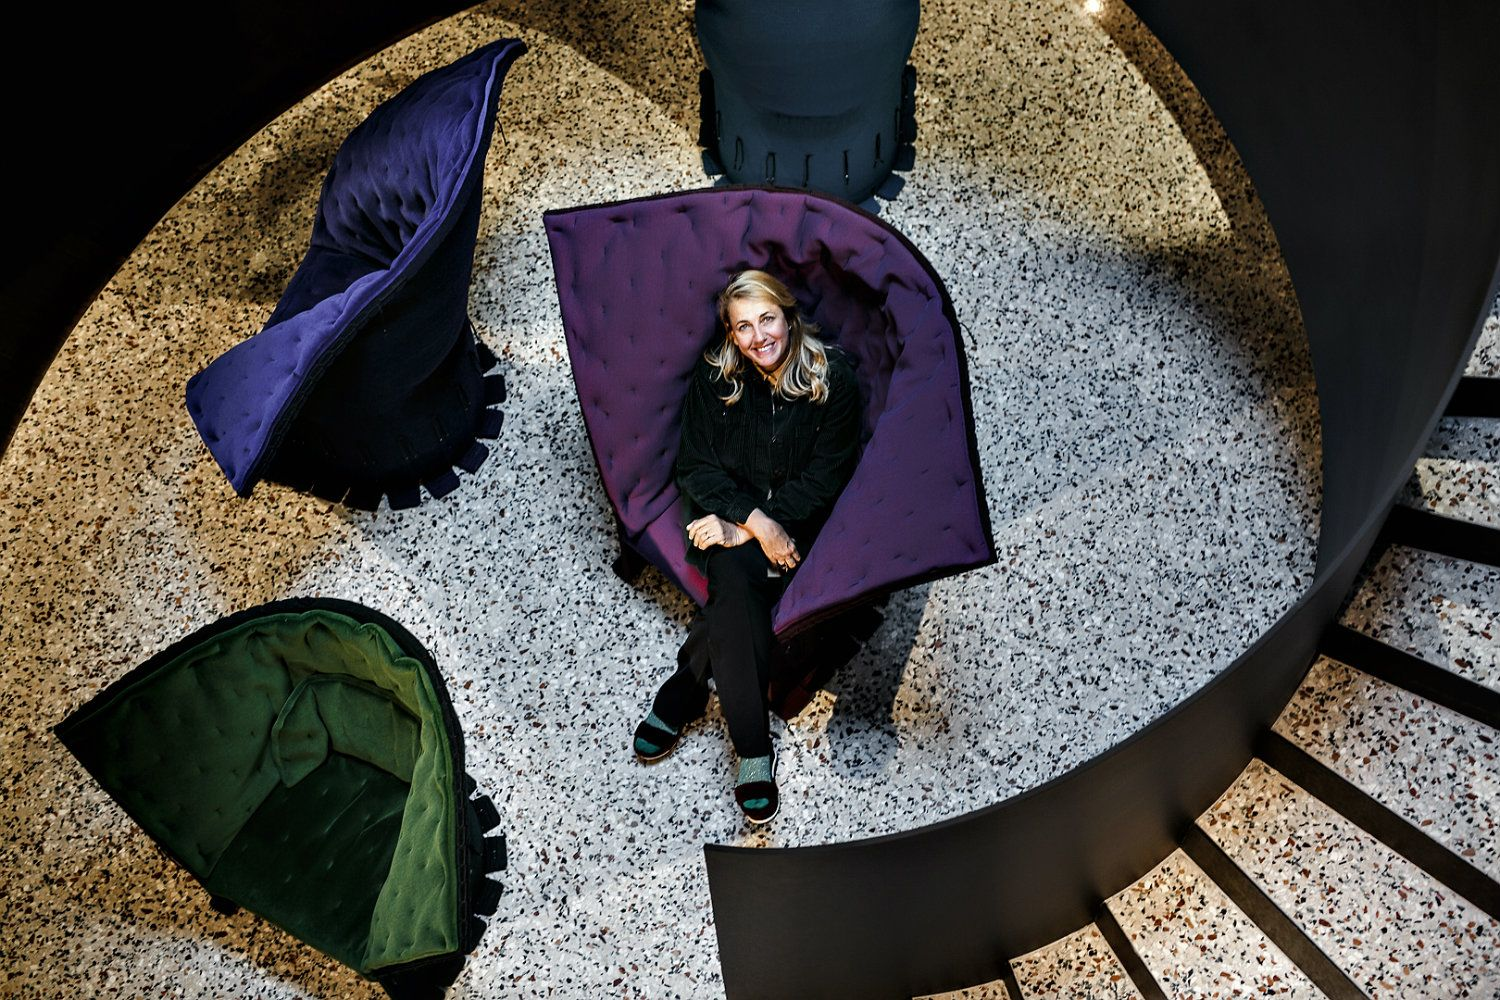 Why Famed Architect Patricia Urquiola Designs With A Social Focus